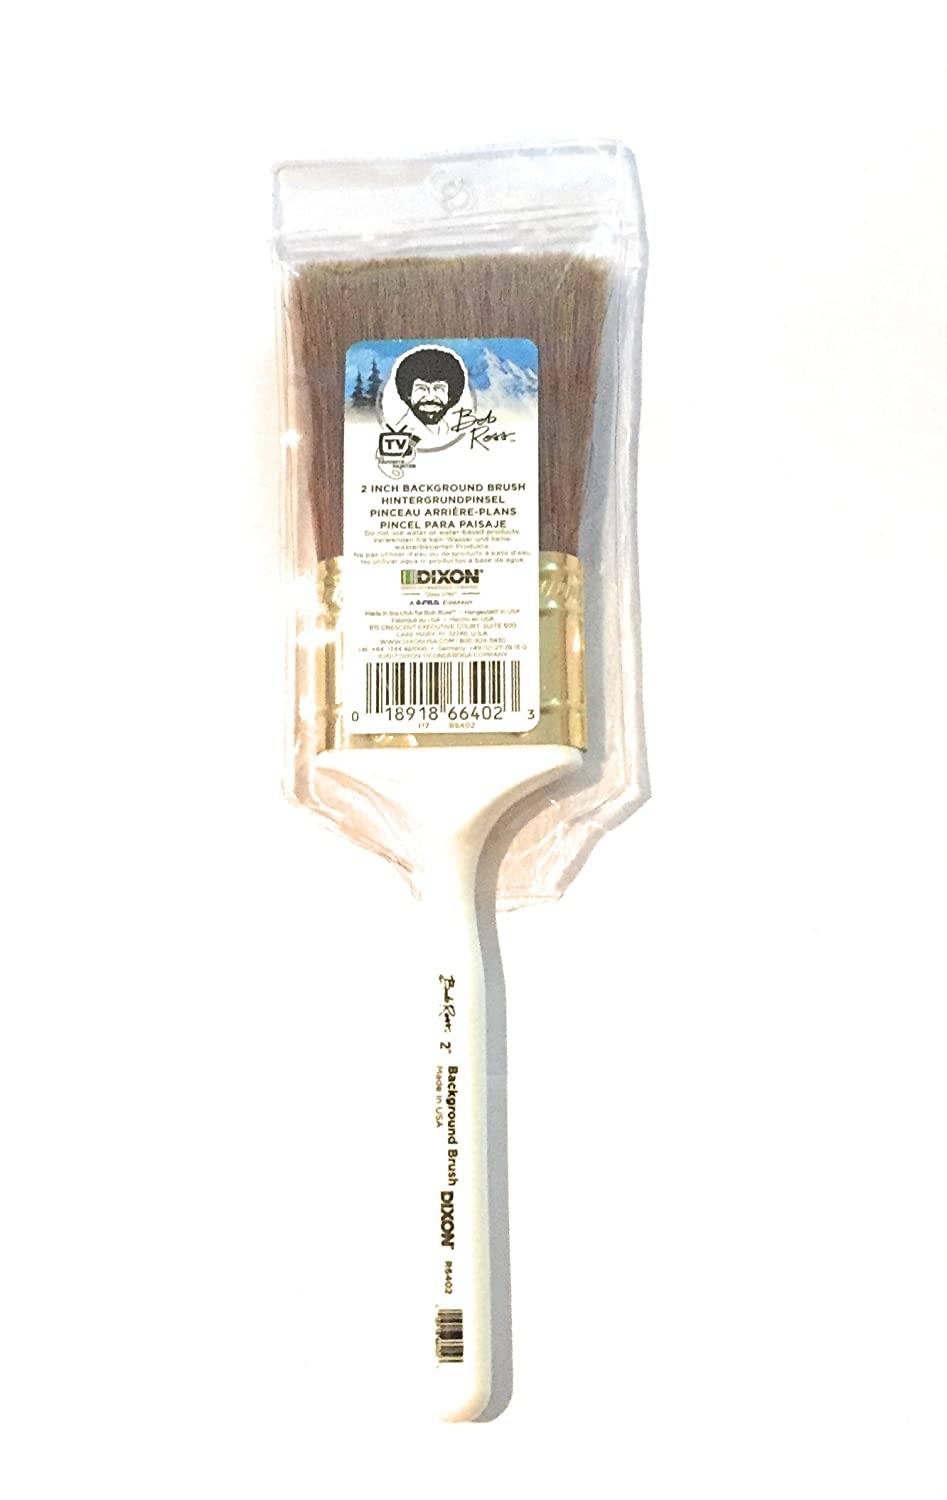 Bob Ross 2-Inch Background Brush